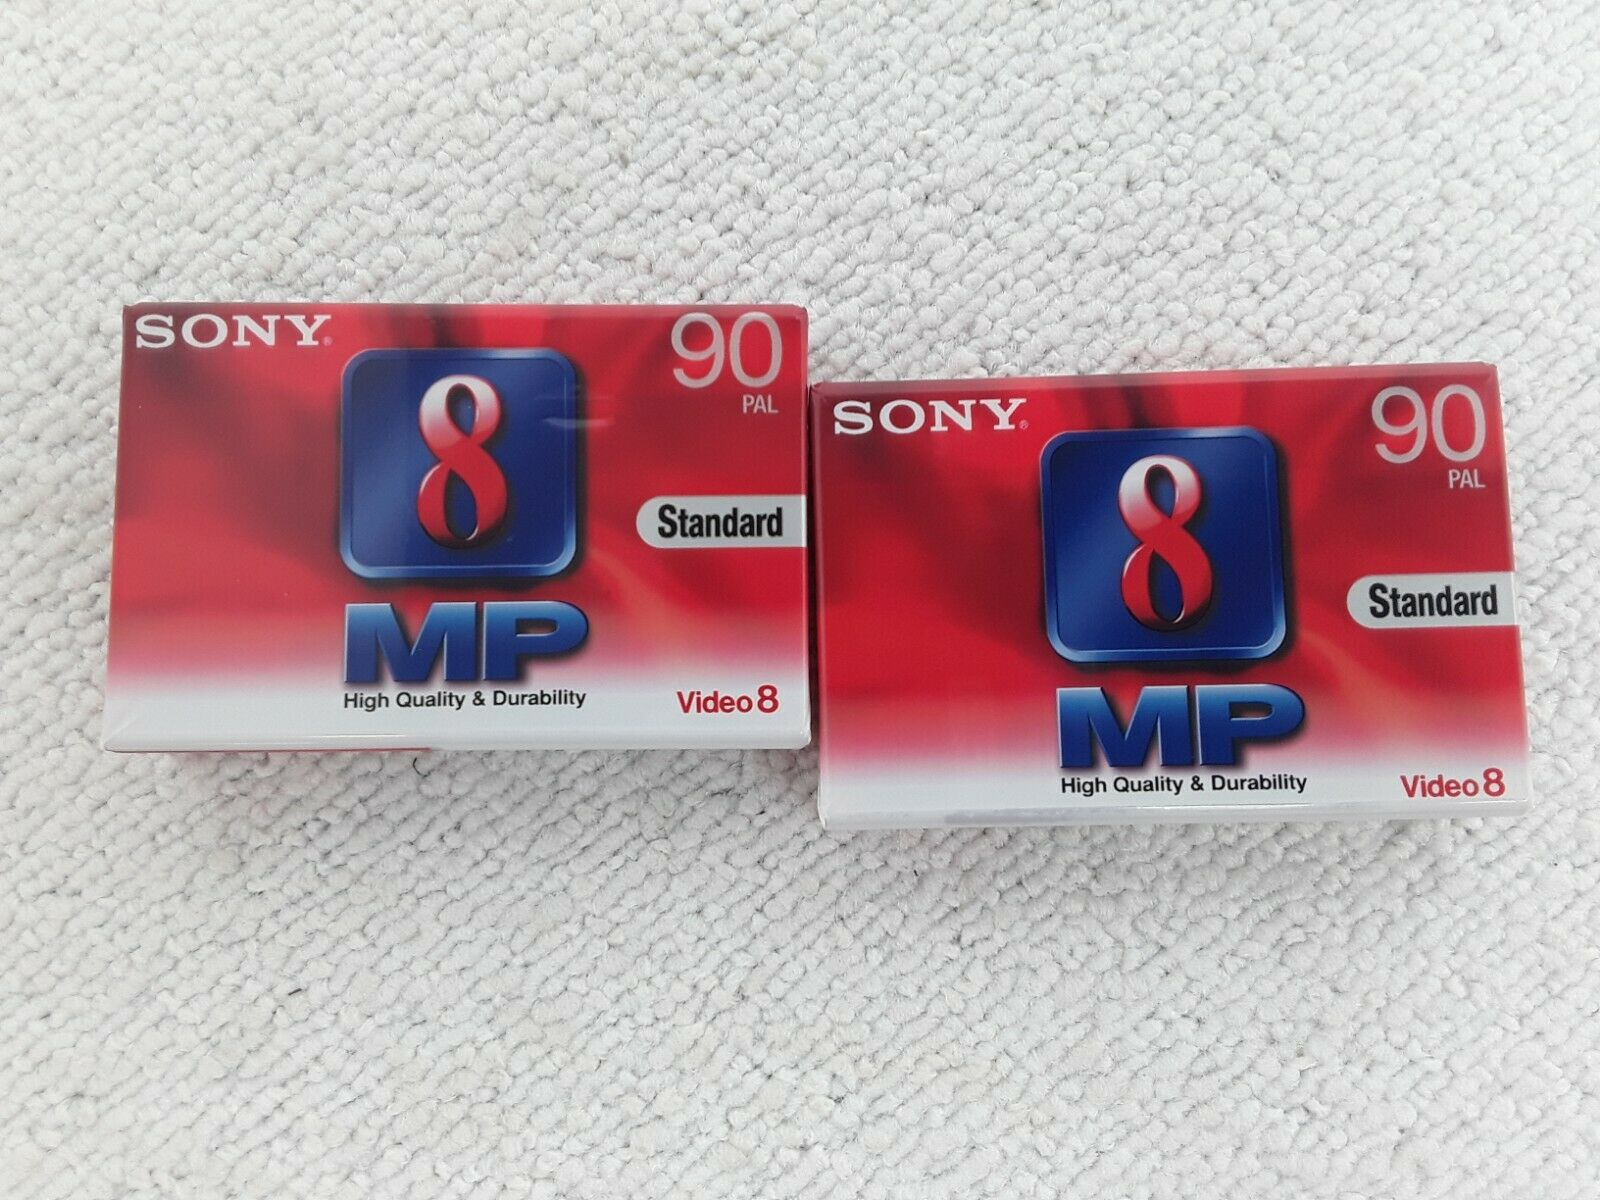 2 New Sony Video 8 MP 90 minute Video Cassette Tapes for all Video 8 and Hi8 Cam